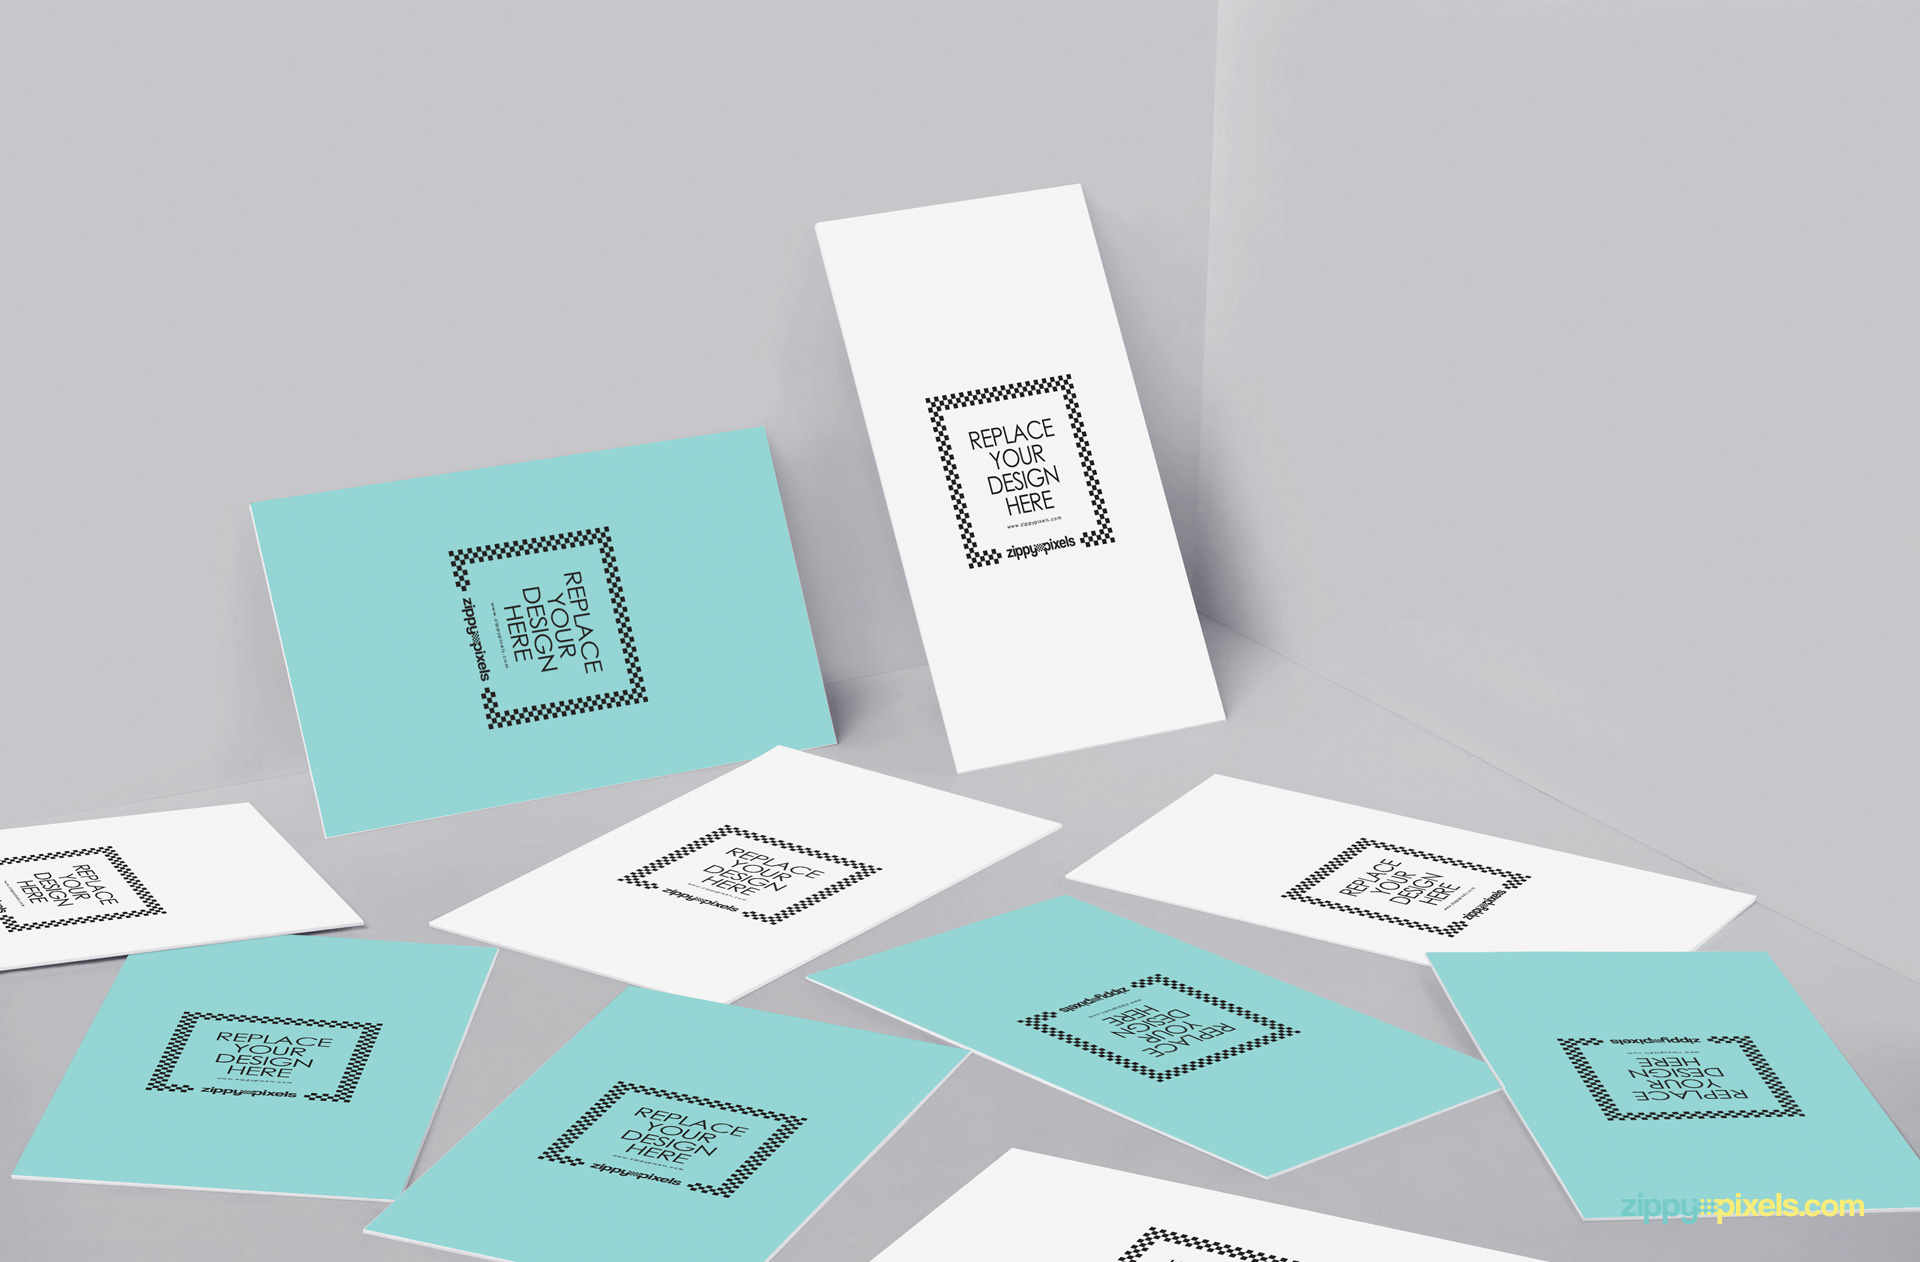 showcase your card designs in a unique manner